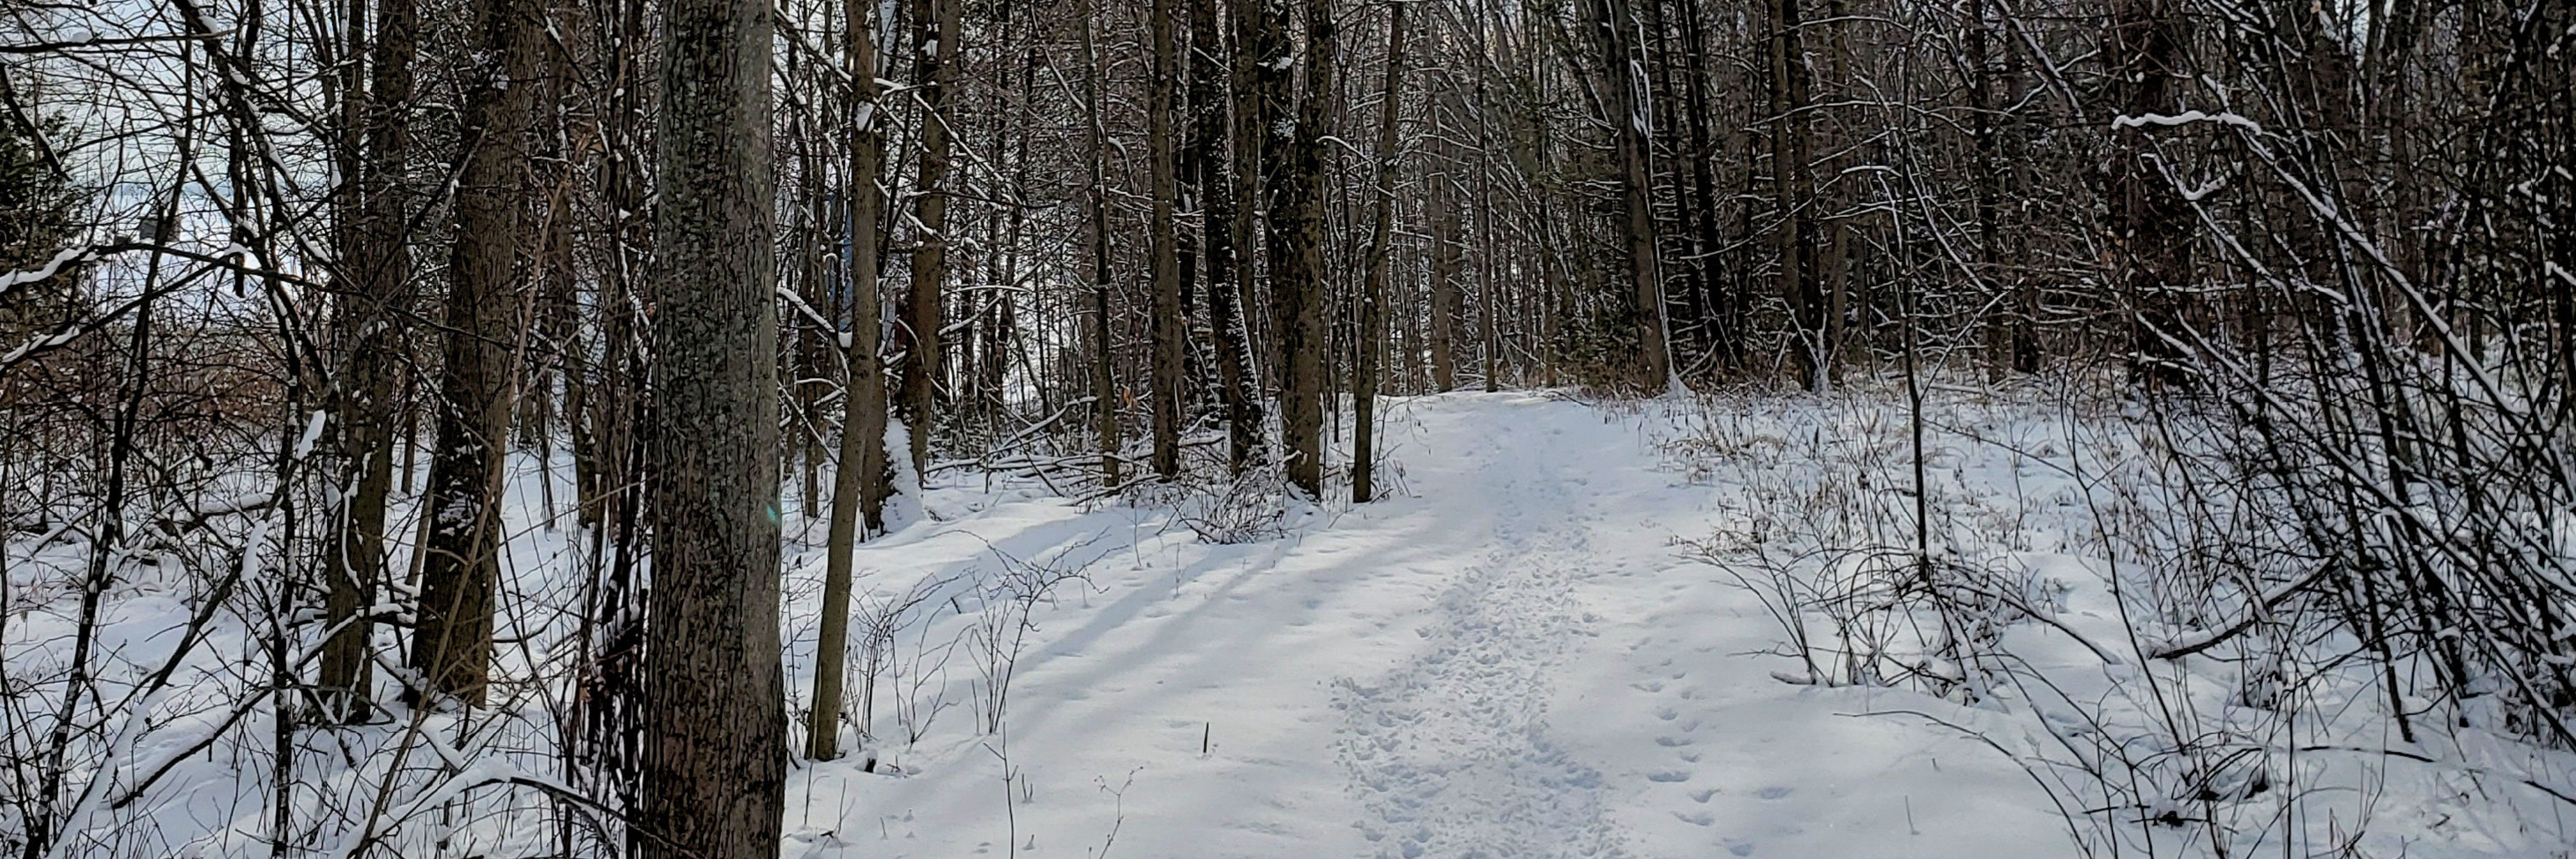 Trail with snow